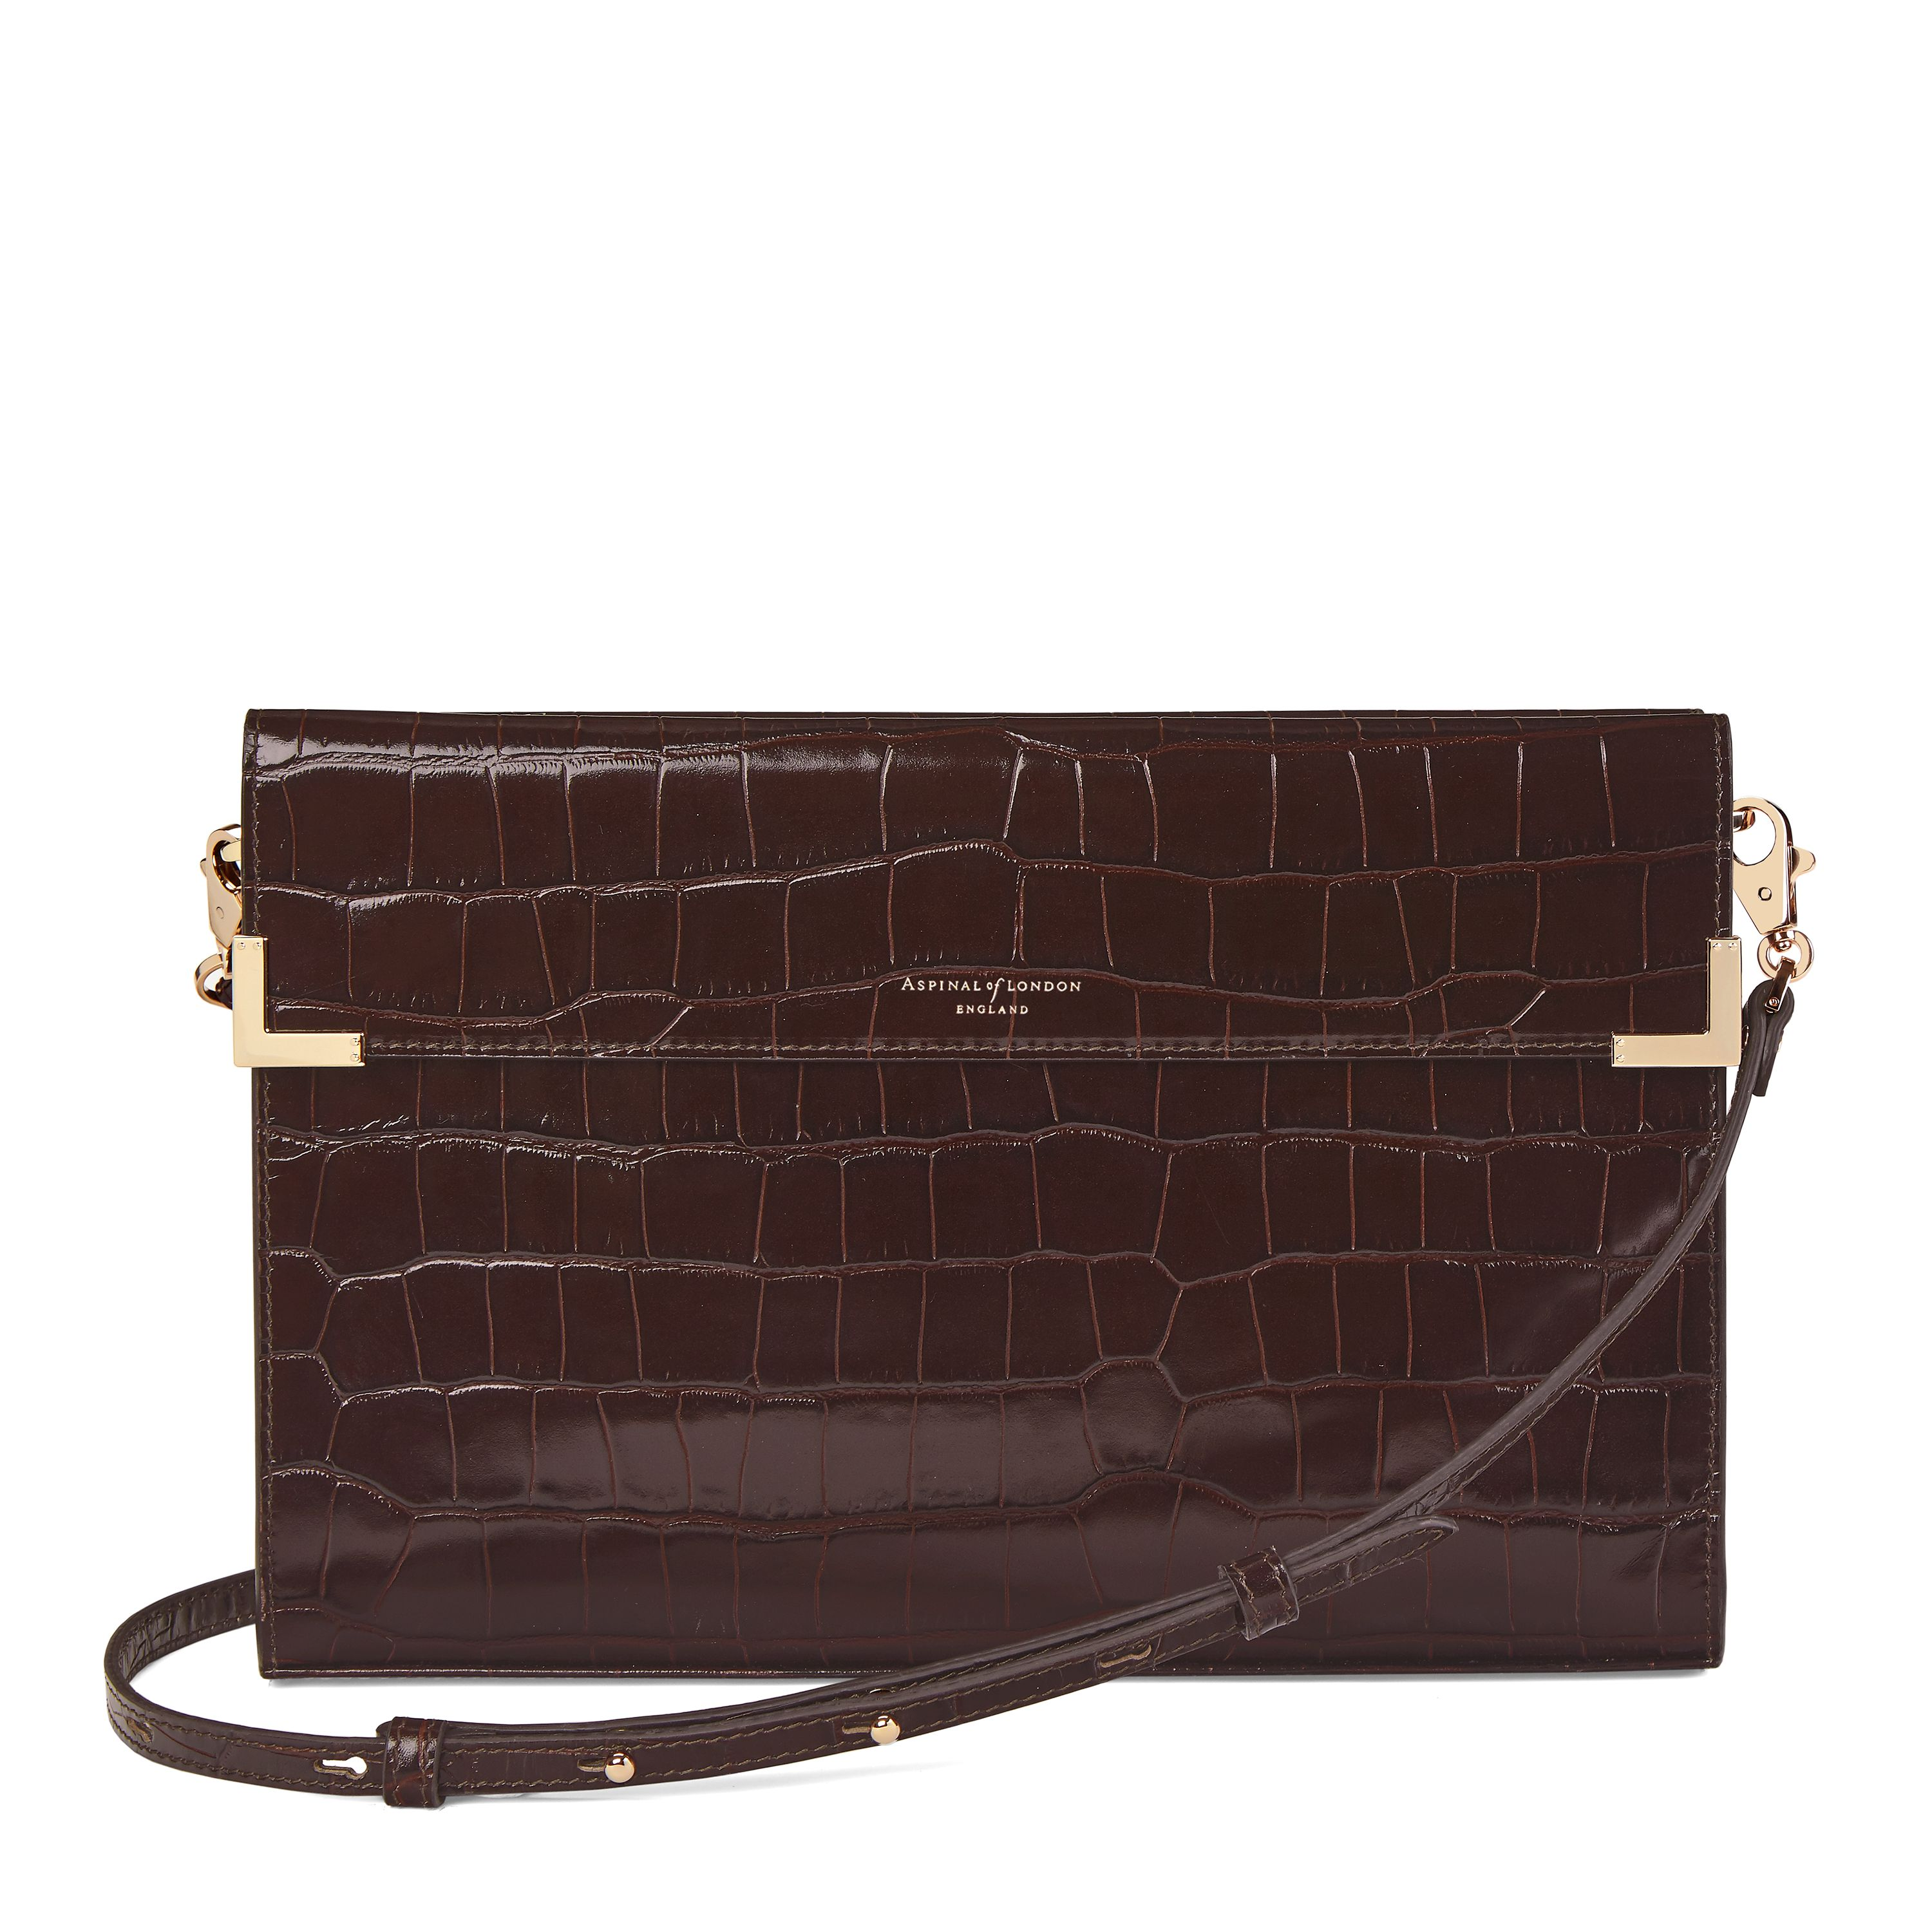 Aspinal of London Editors clutch, Brown